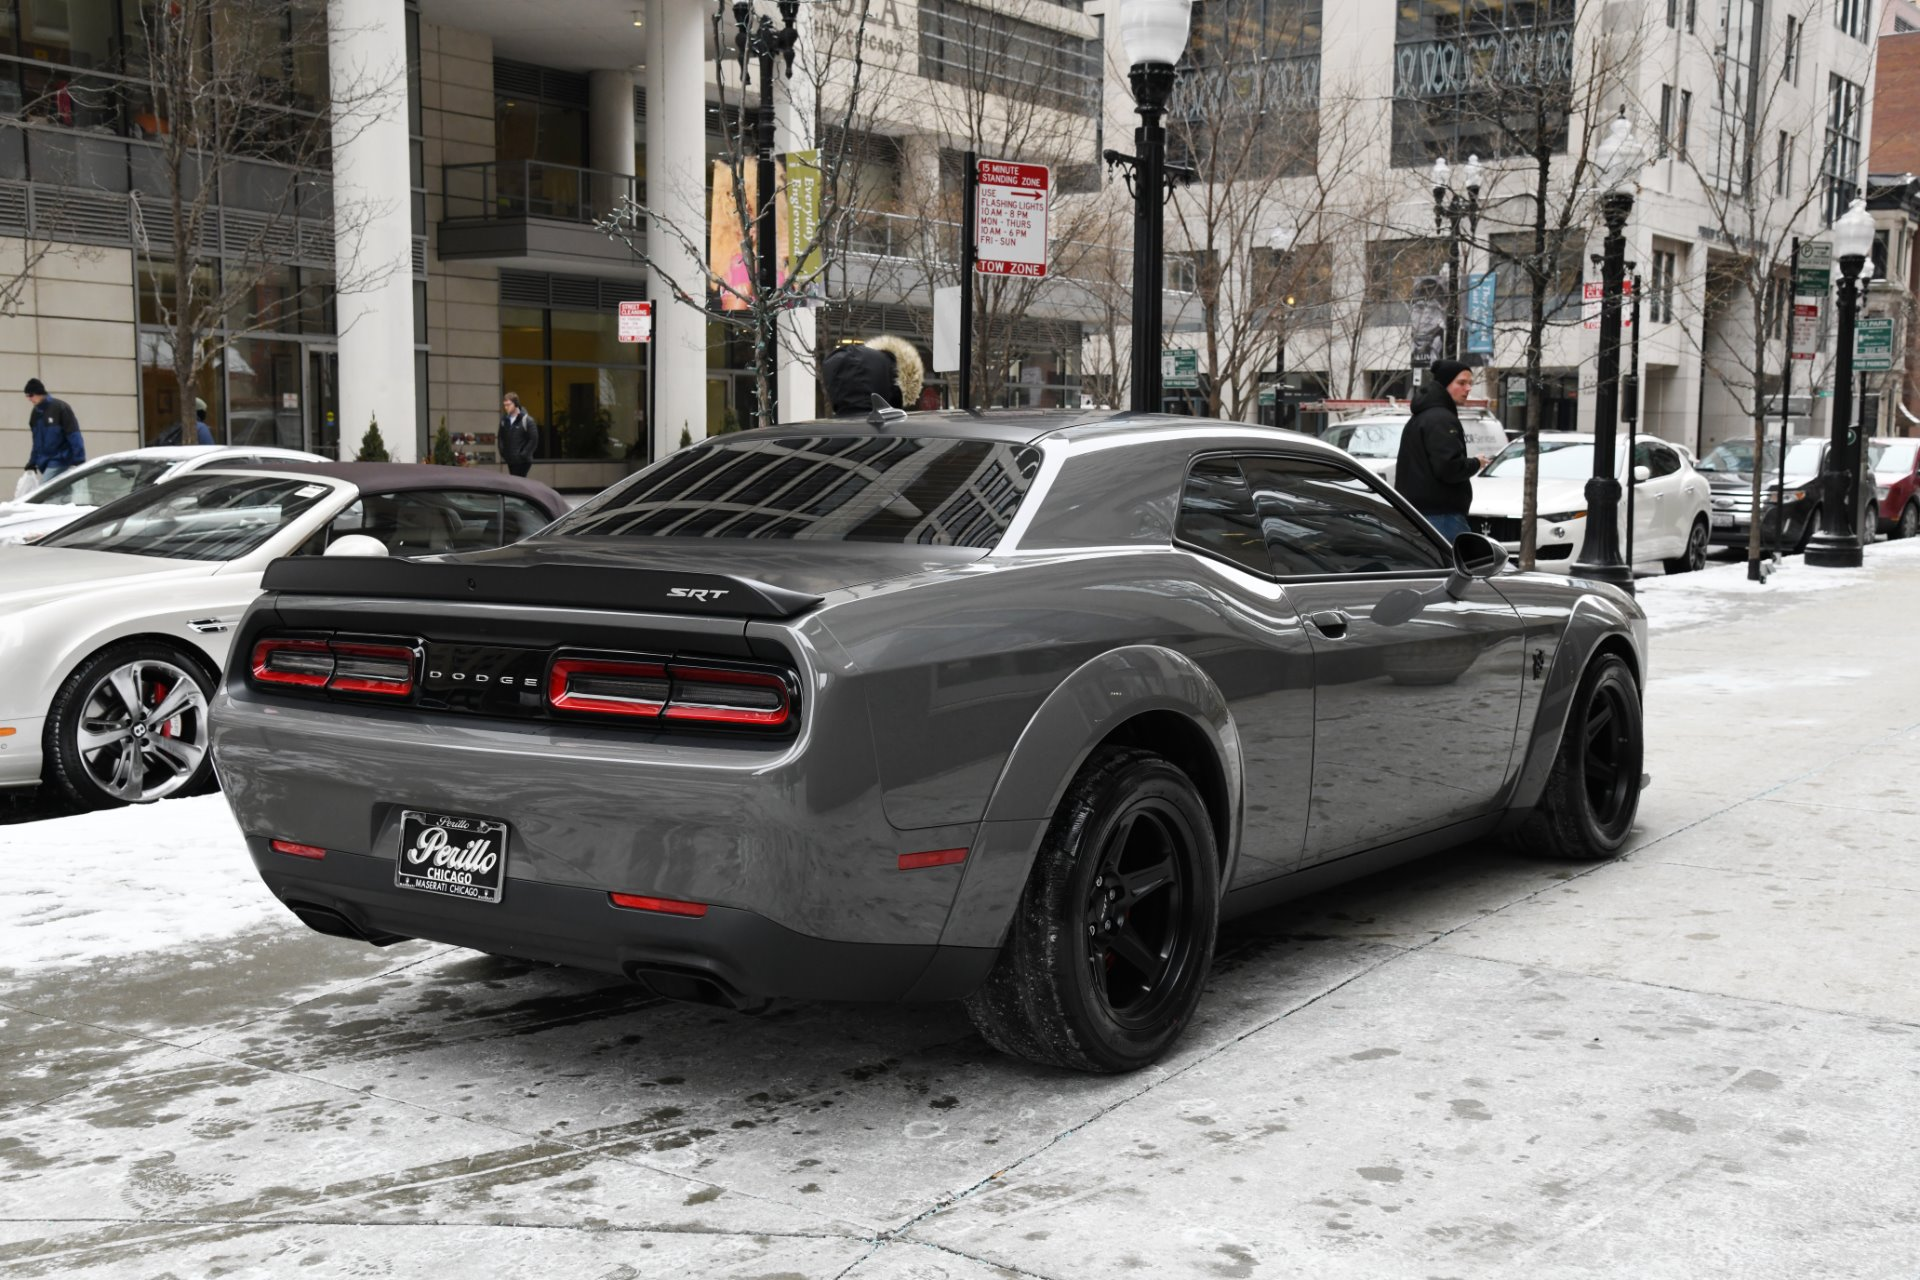 2018 dodge challenger srt demon stock r493b for sale near chicago il il dodge dealer. Black Bedroom Furniture Sets. Home Design Ideas